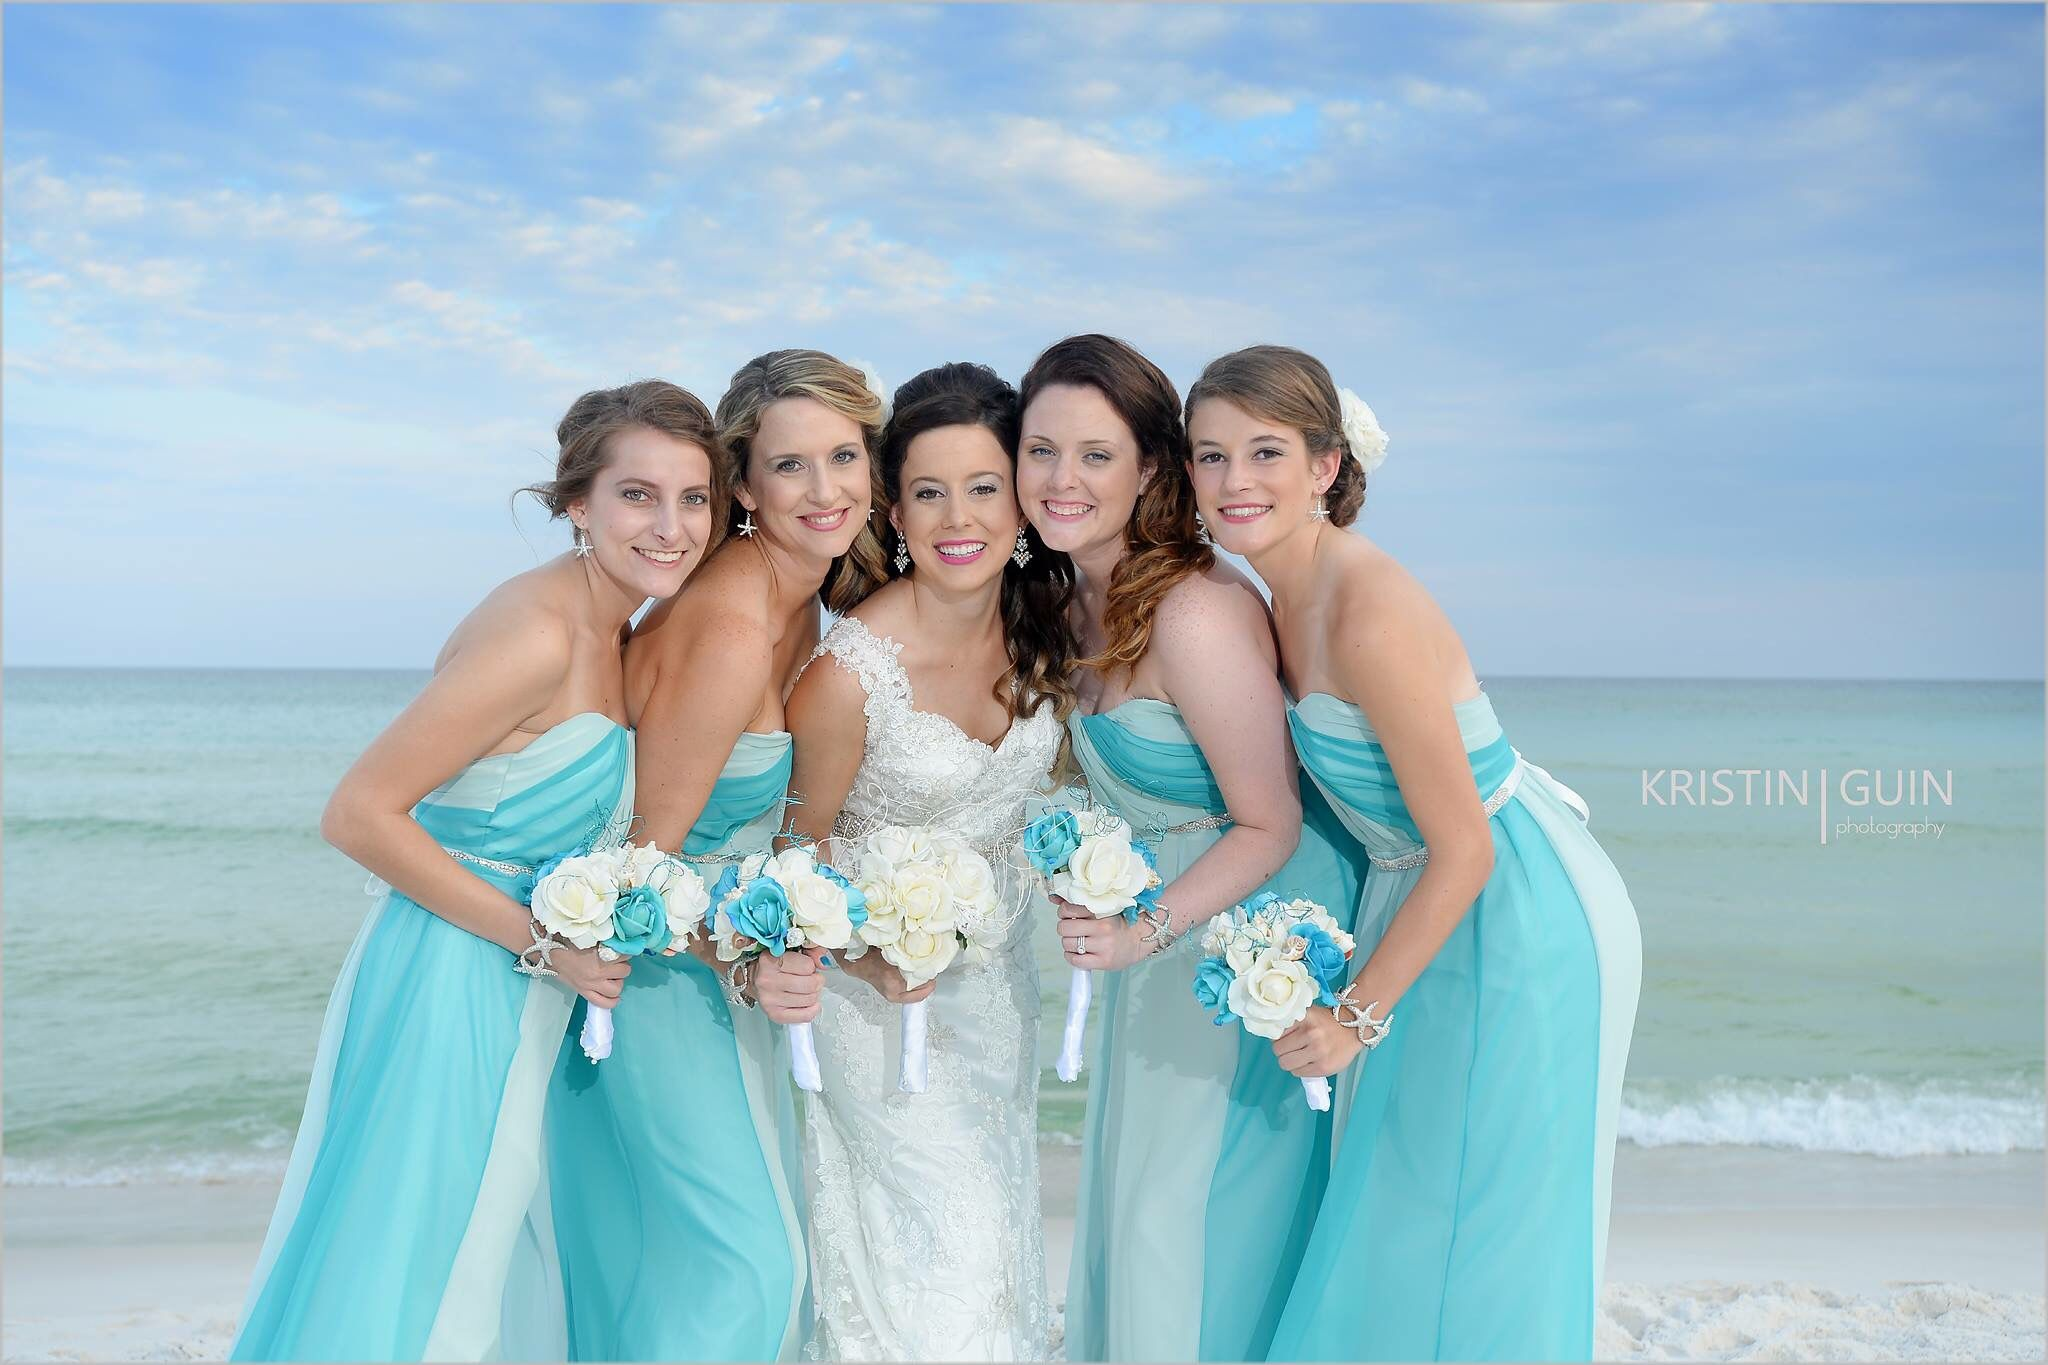 Bride and bridesmaids | Weddings | Pinterest